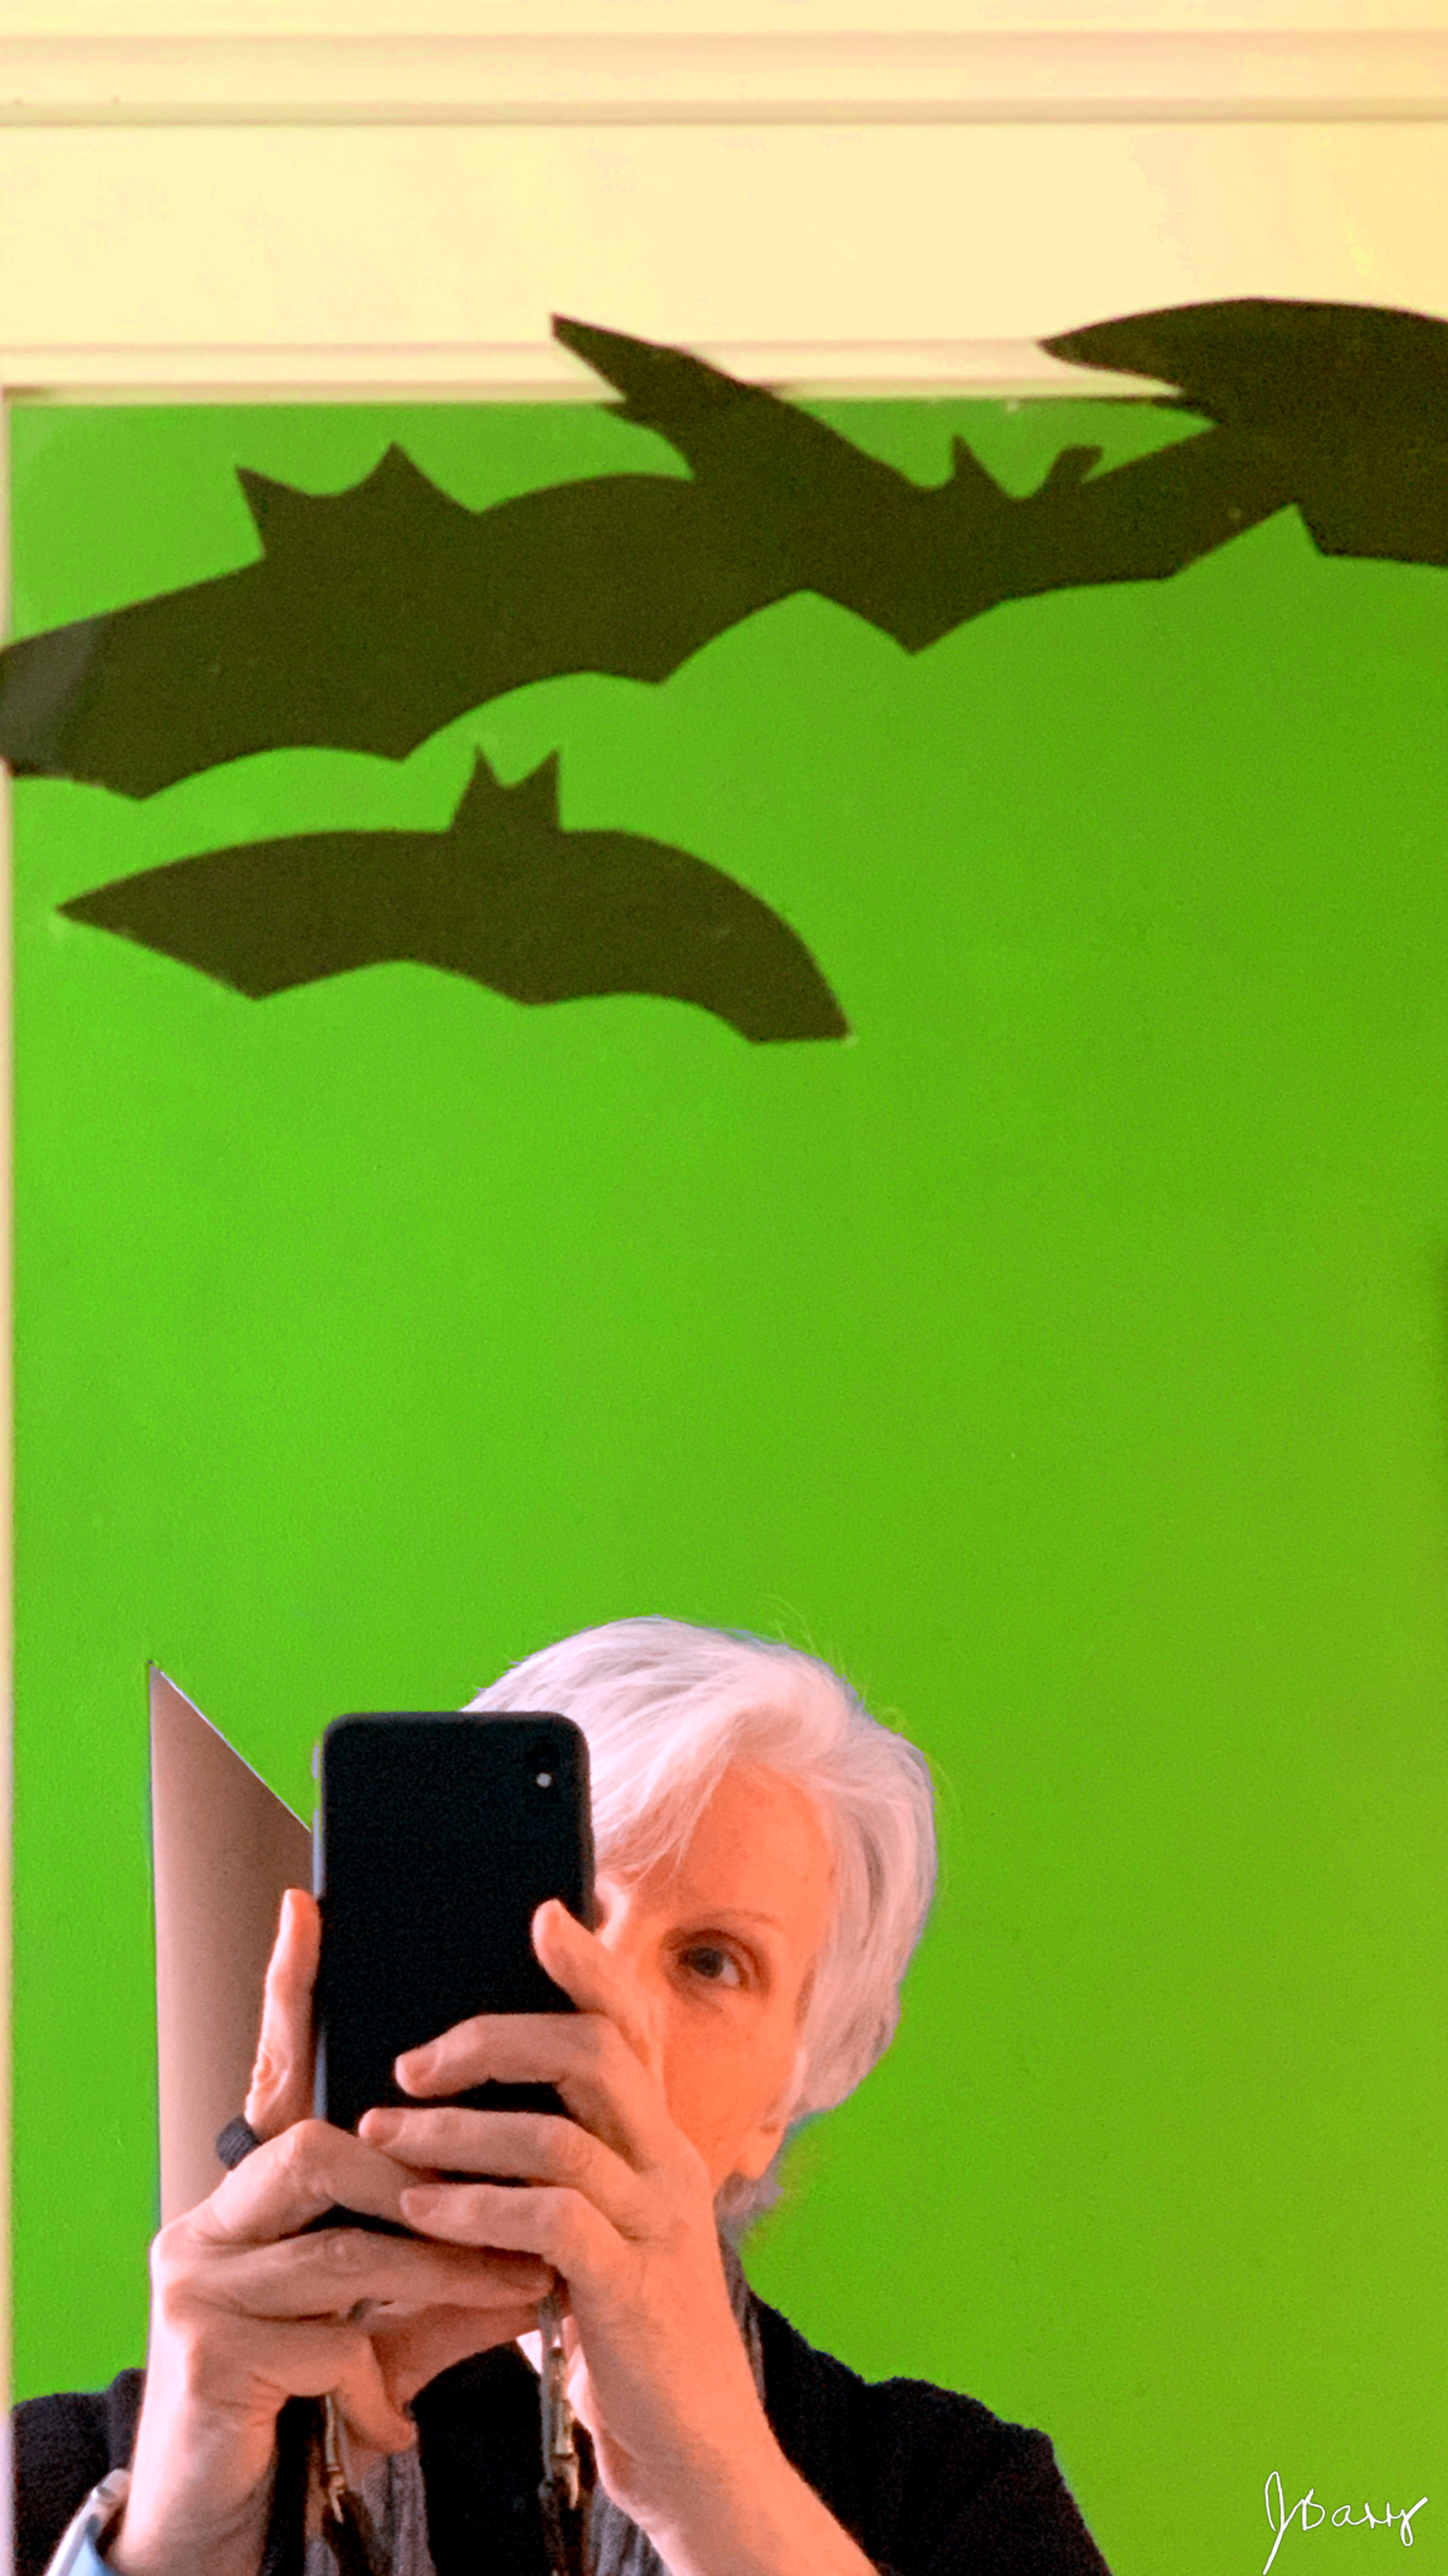 April 11, 2019 - Mirror, mirror on the wall; who's the battiest of them all?! [Selfie taken at the Edward Gorey House in Yarmouth Port, MA]